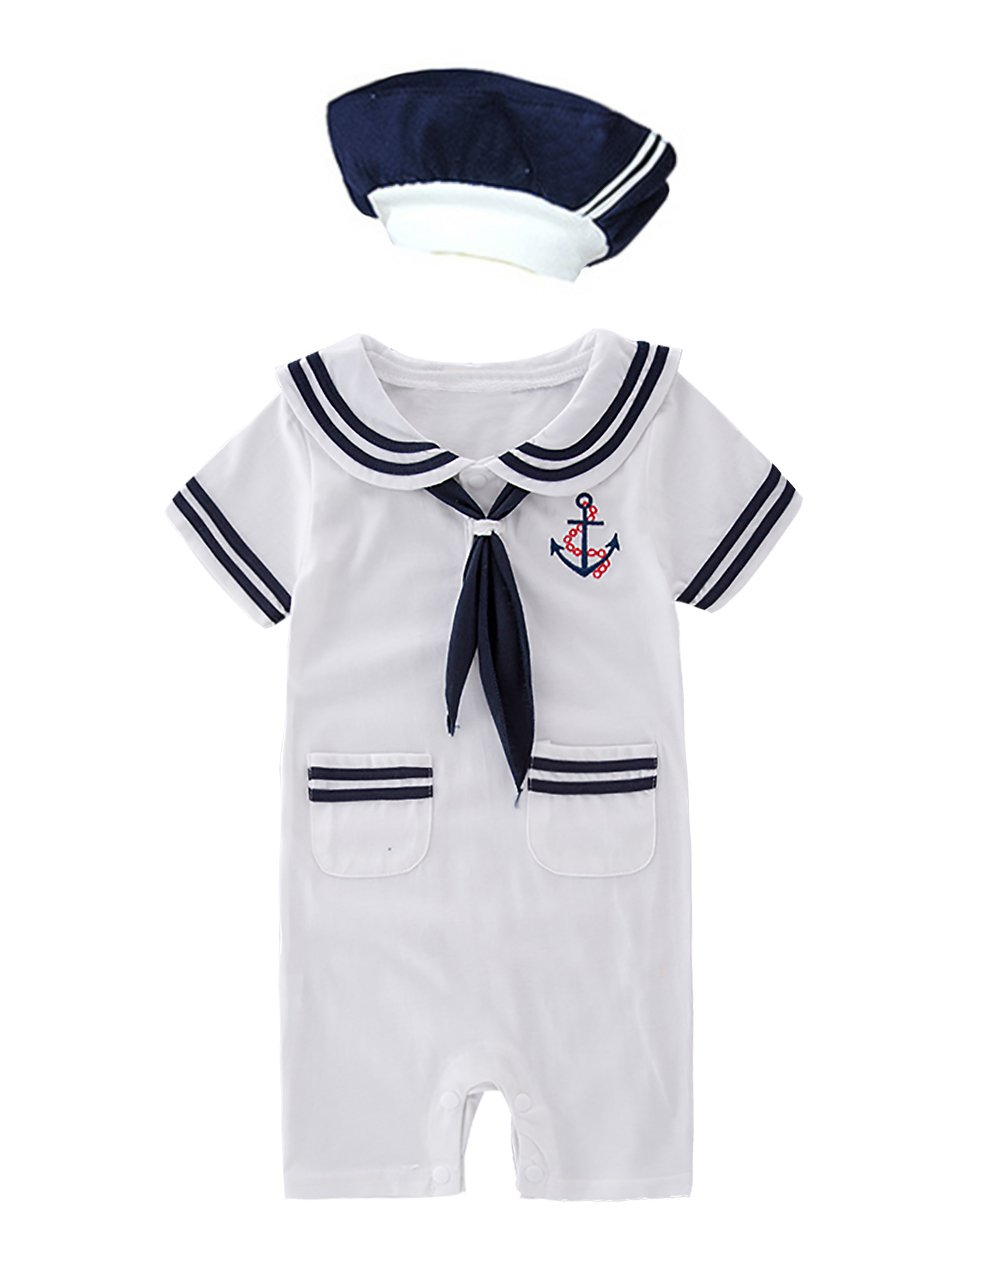 XM Nyan May's Baby Toddler Boys Sailor Stripe Romper Marine Navy Romper Onesie Outfit (6-12 Months, White B)